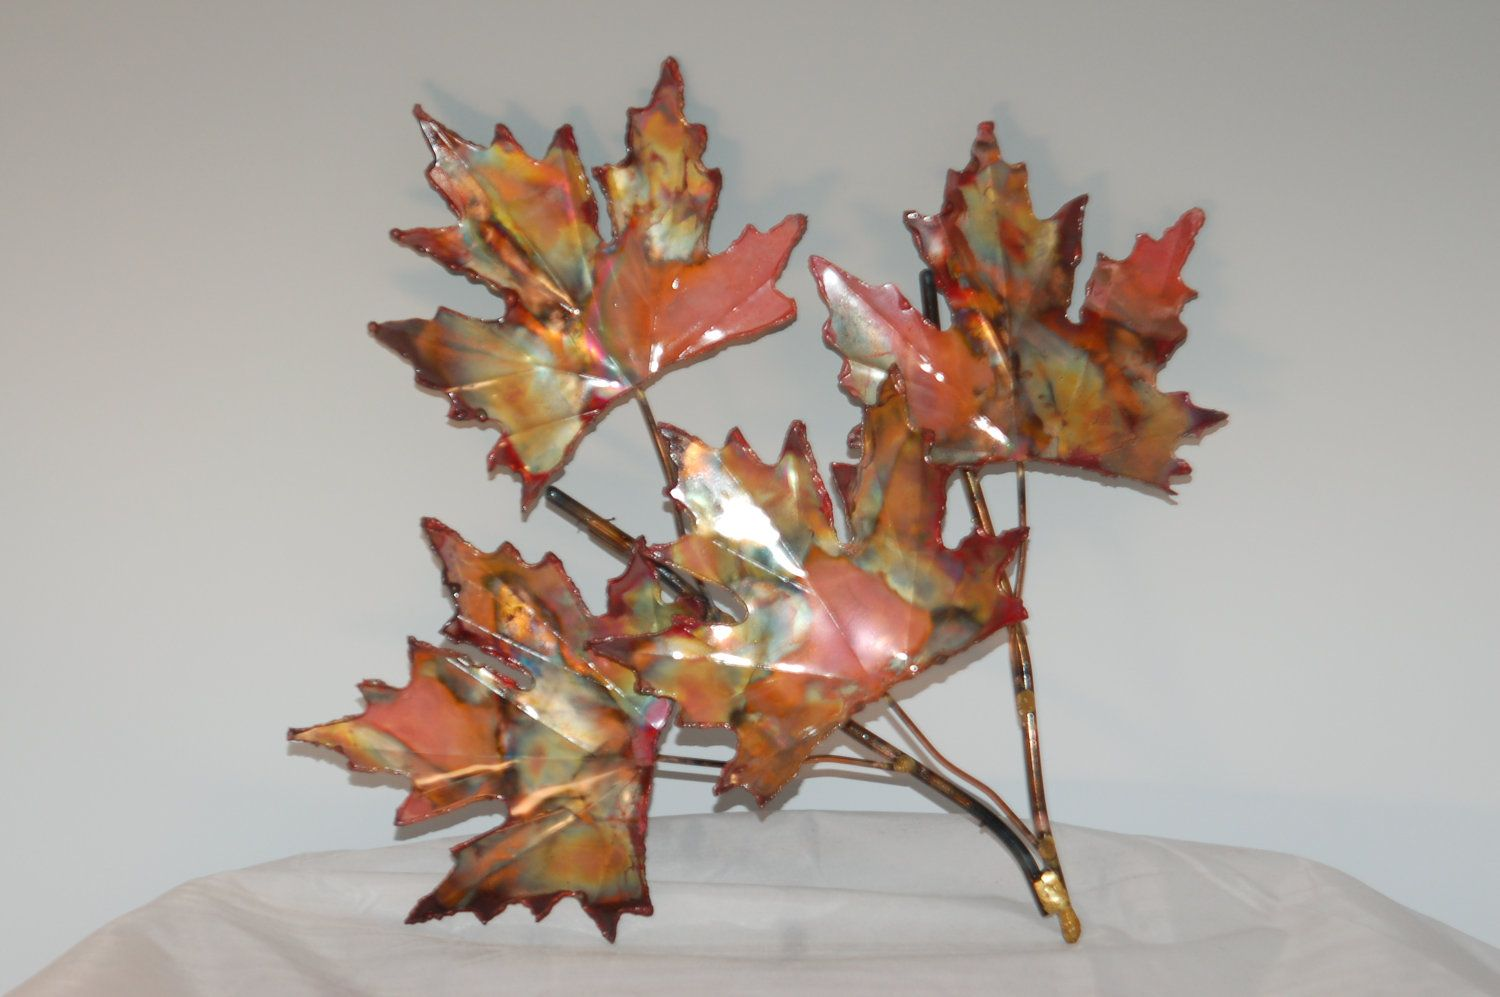 Leaf Metal Wall Art Copper Maple Leaf Branch Handcrafted Metal Sculpture Home